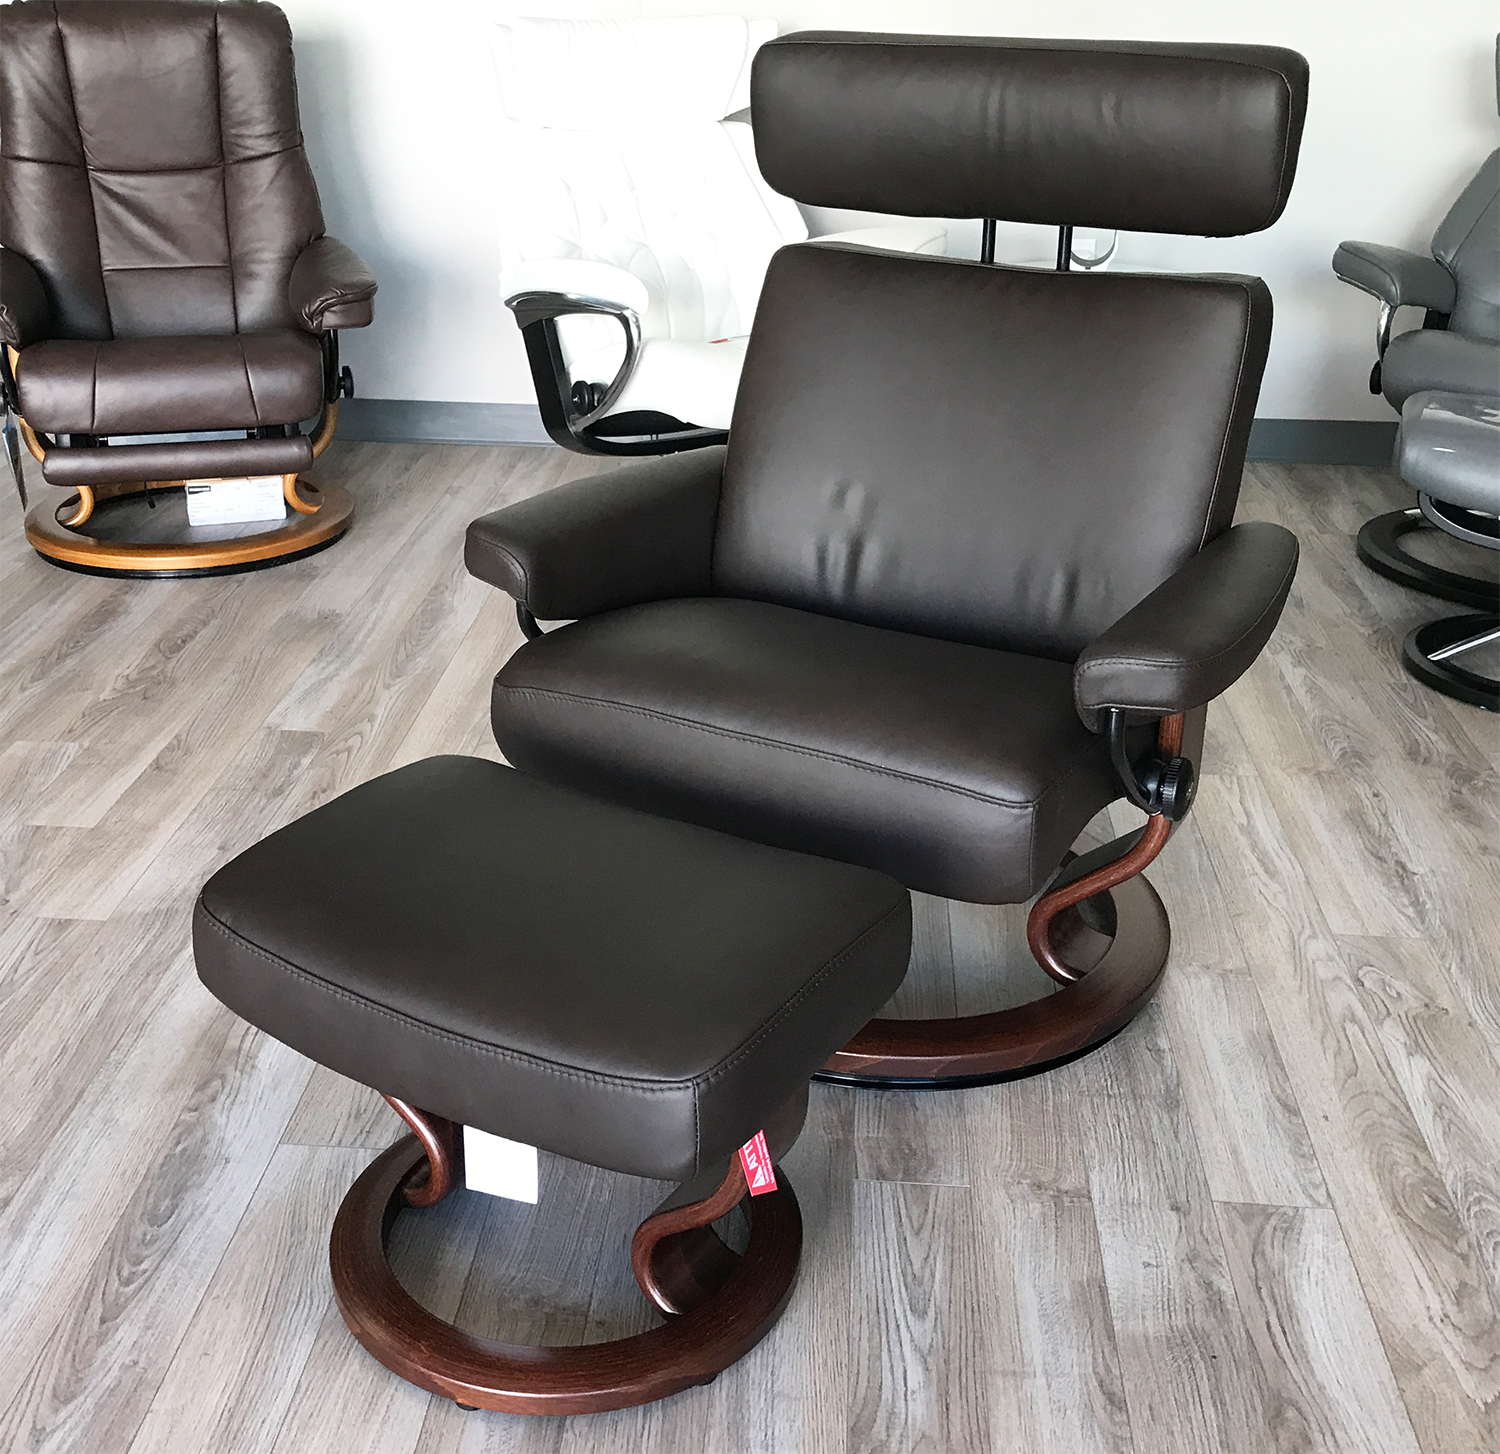 Merveilleux Stressless Taurus Paloma Mocca Leather Recliner Chair And Ottoman By Ekornes